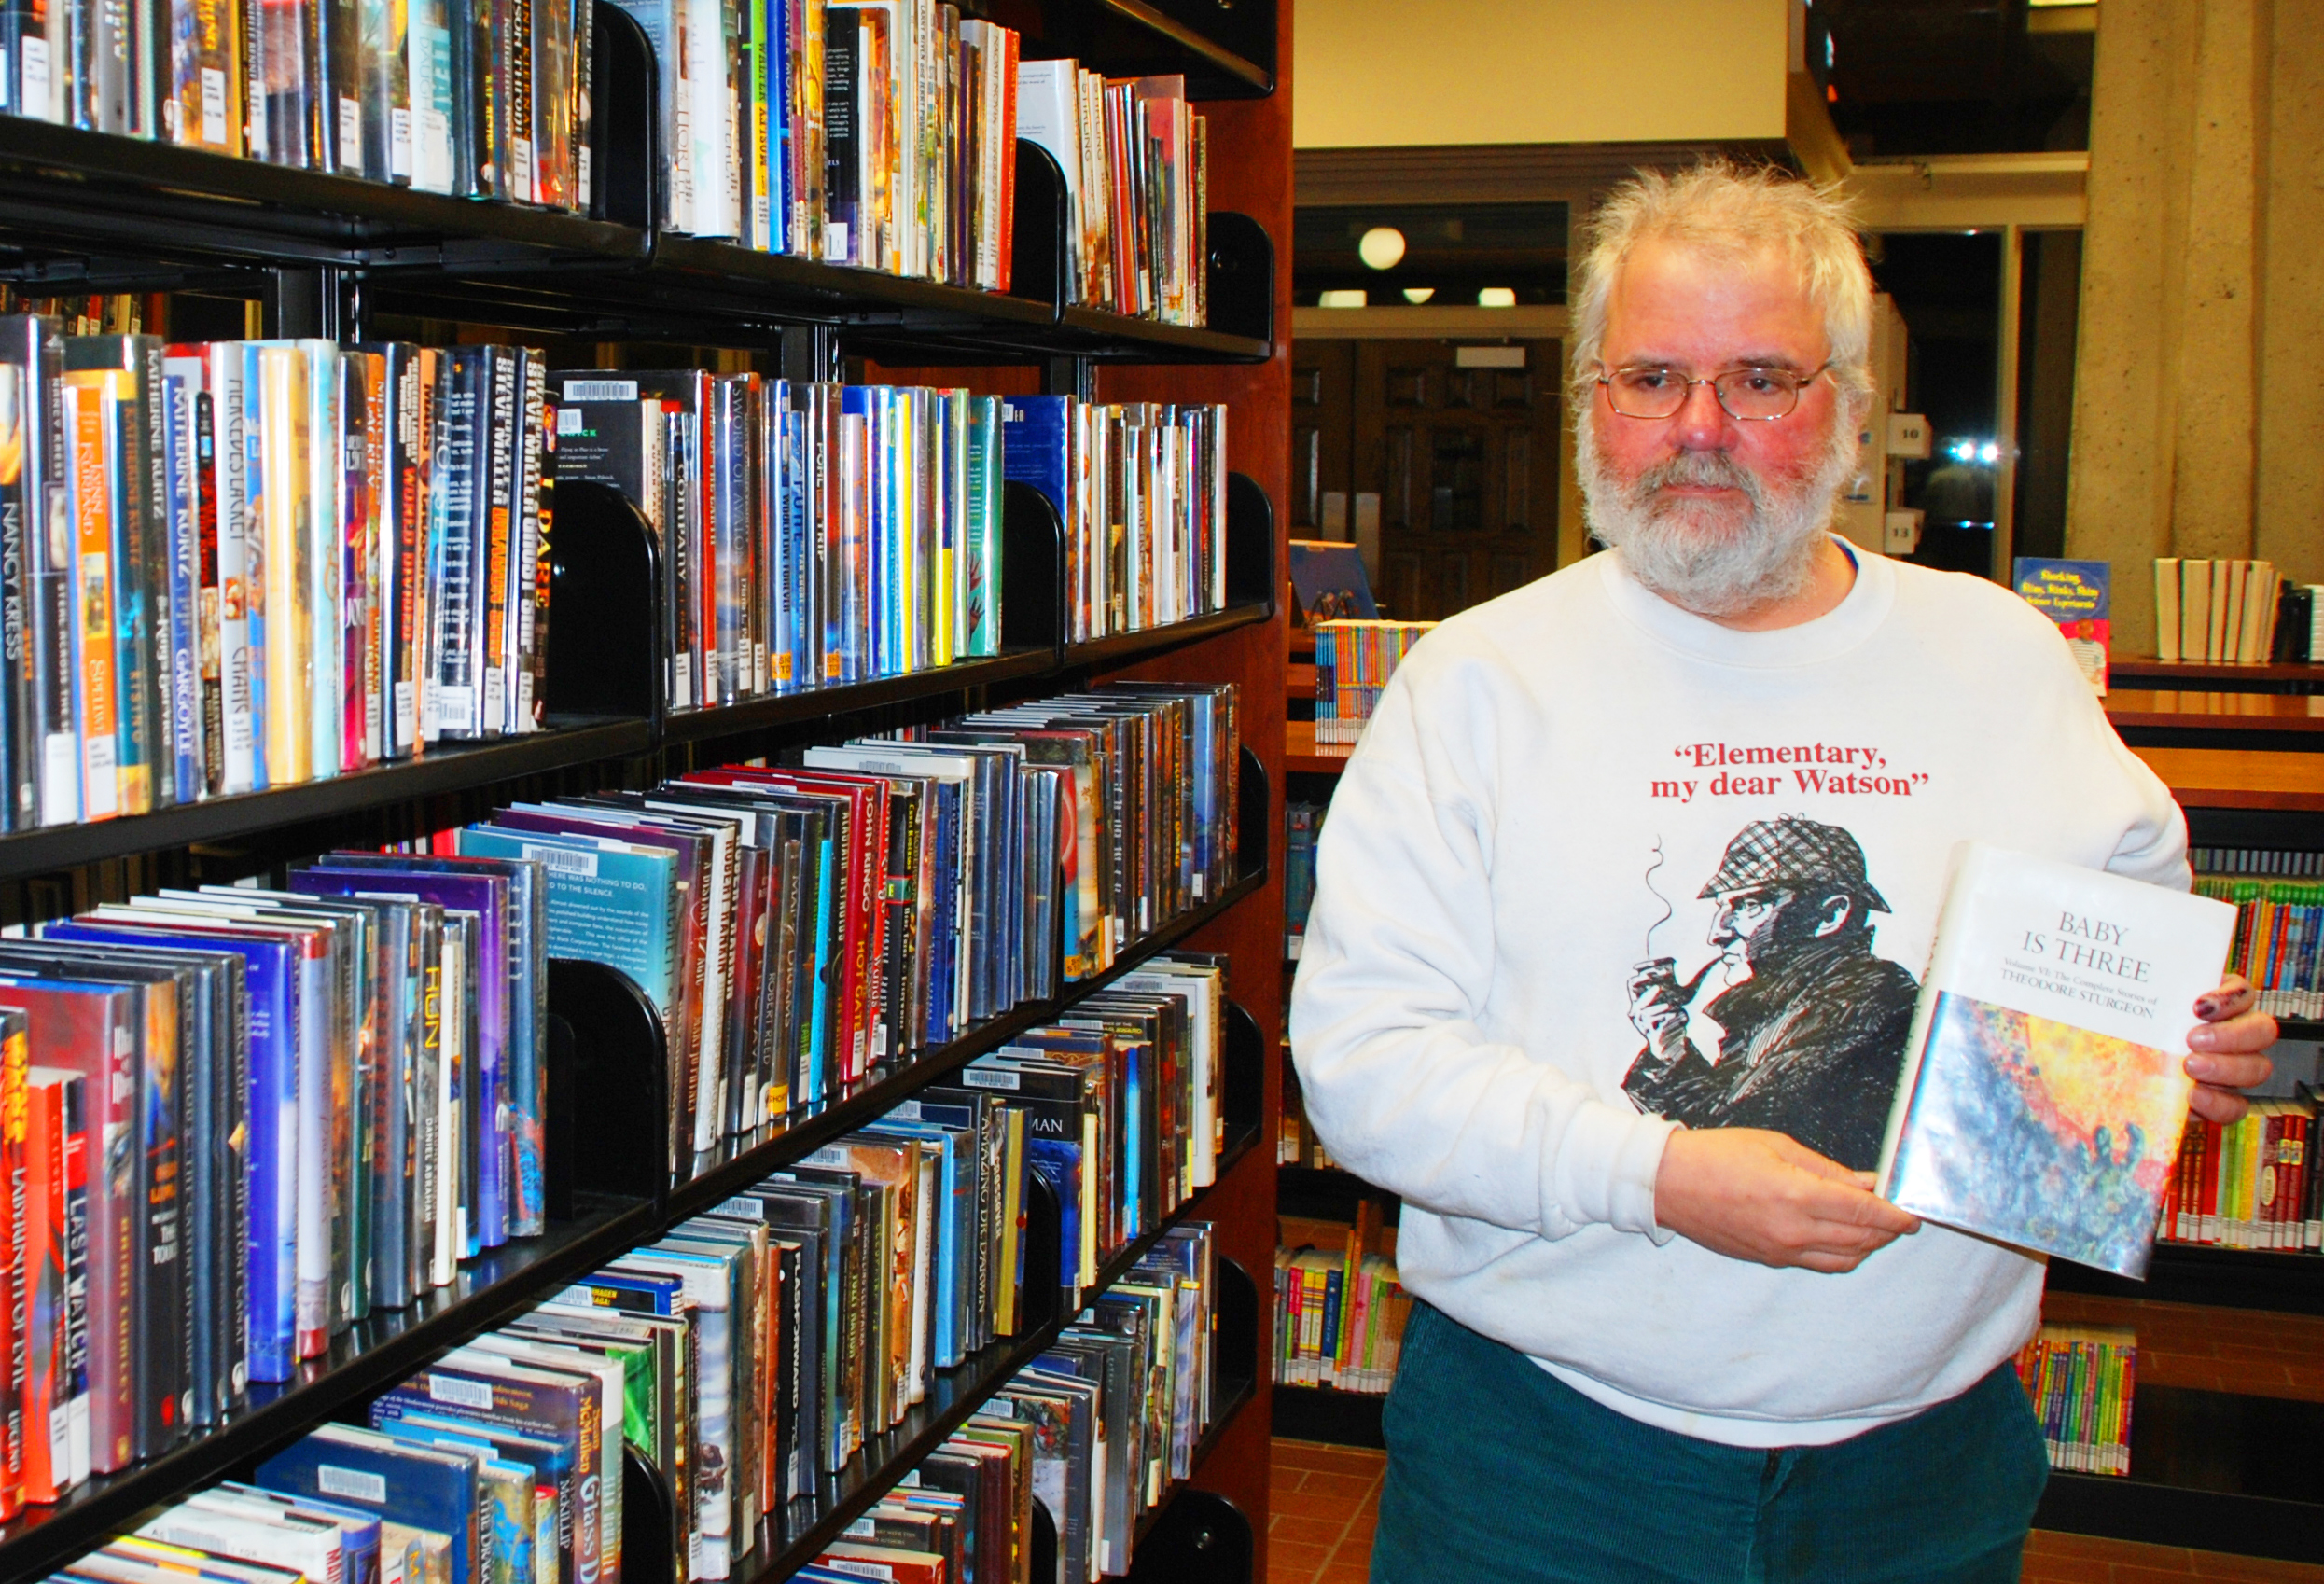 Eric Heideman with one of his favorite sci-fi books, a collection of stories by Theodore Sturgeon.